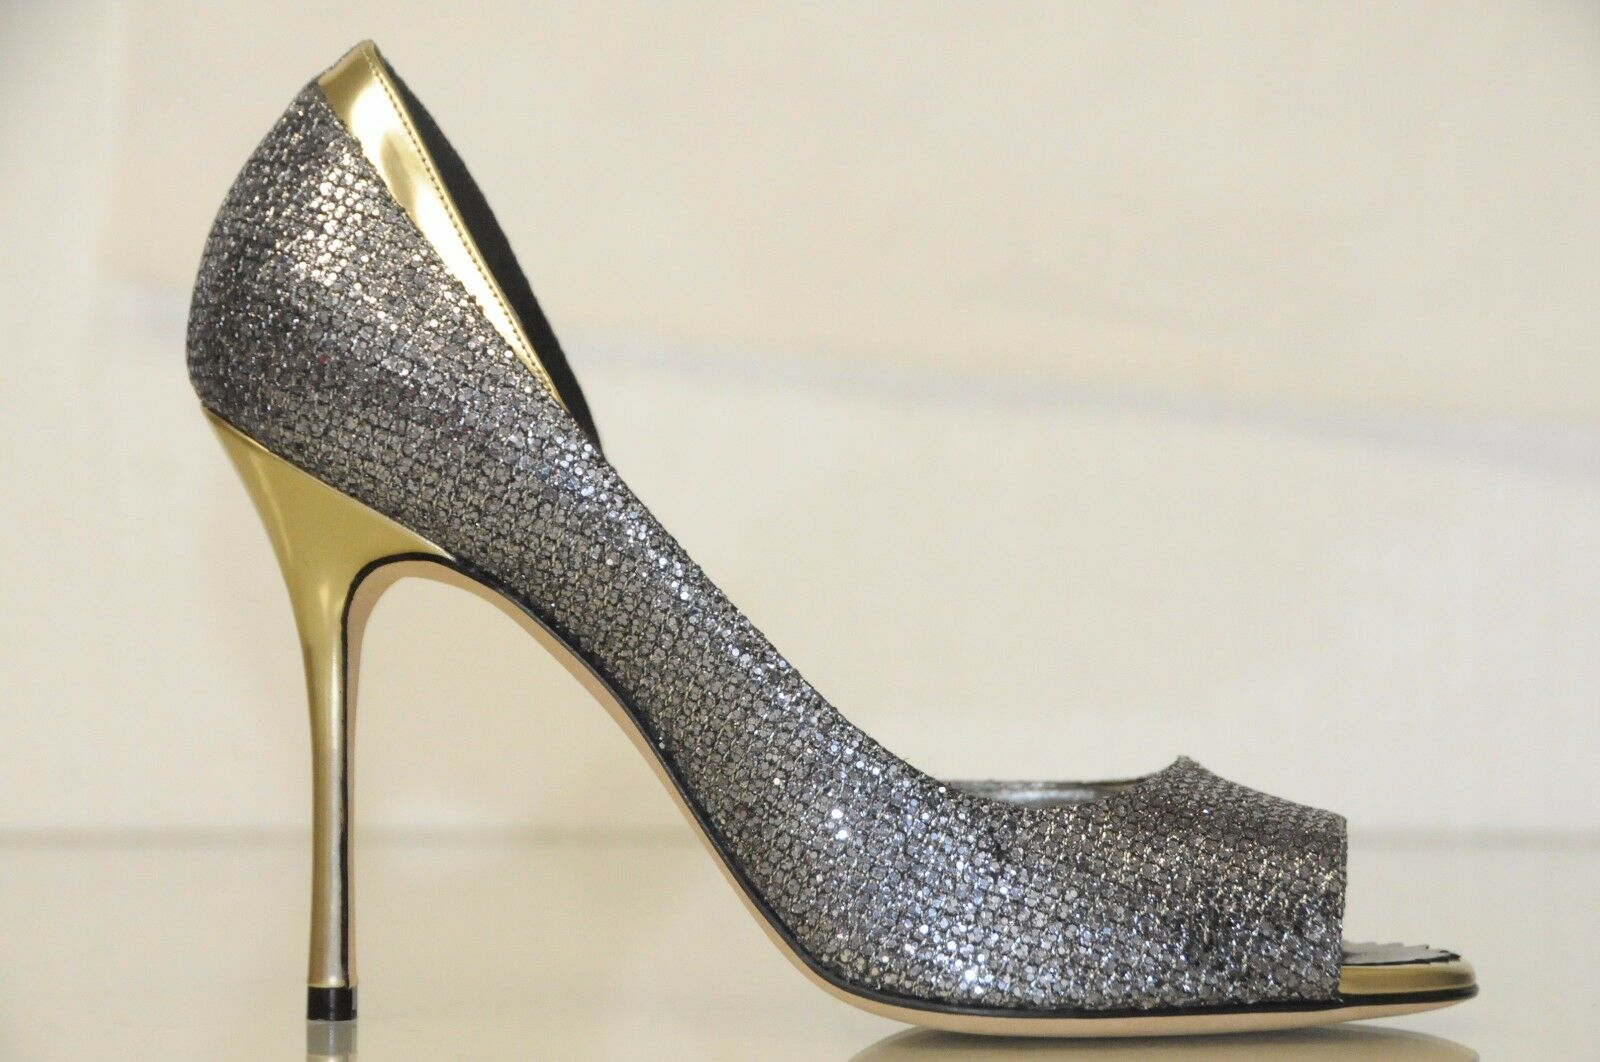 New Manolo Manolo Manolo Blahnik ALIM 105 Anthracite argent GLITTER or chaussures Pumps 41.5 26e604